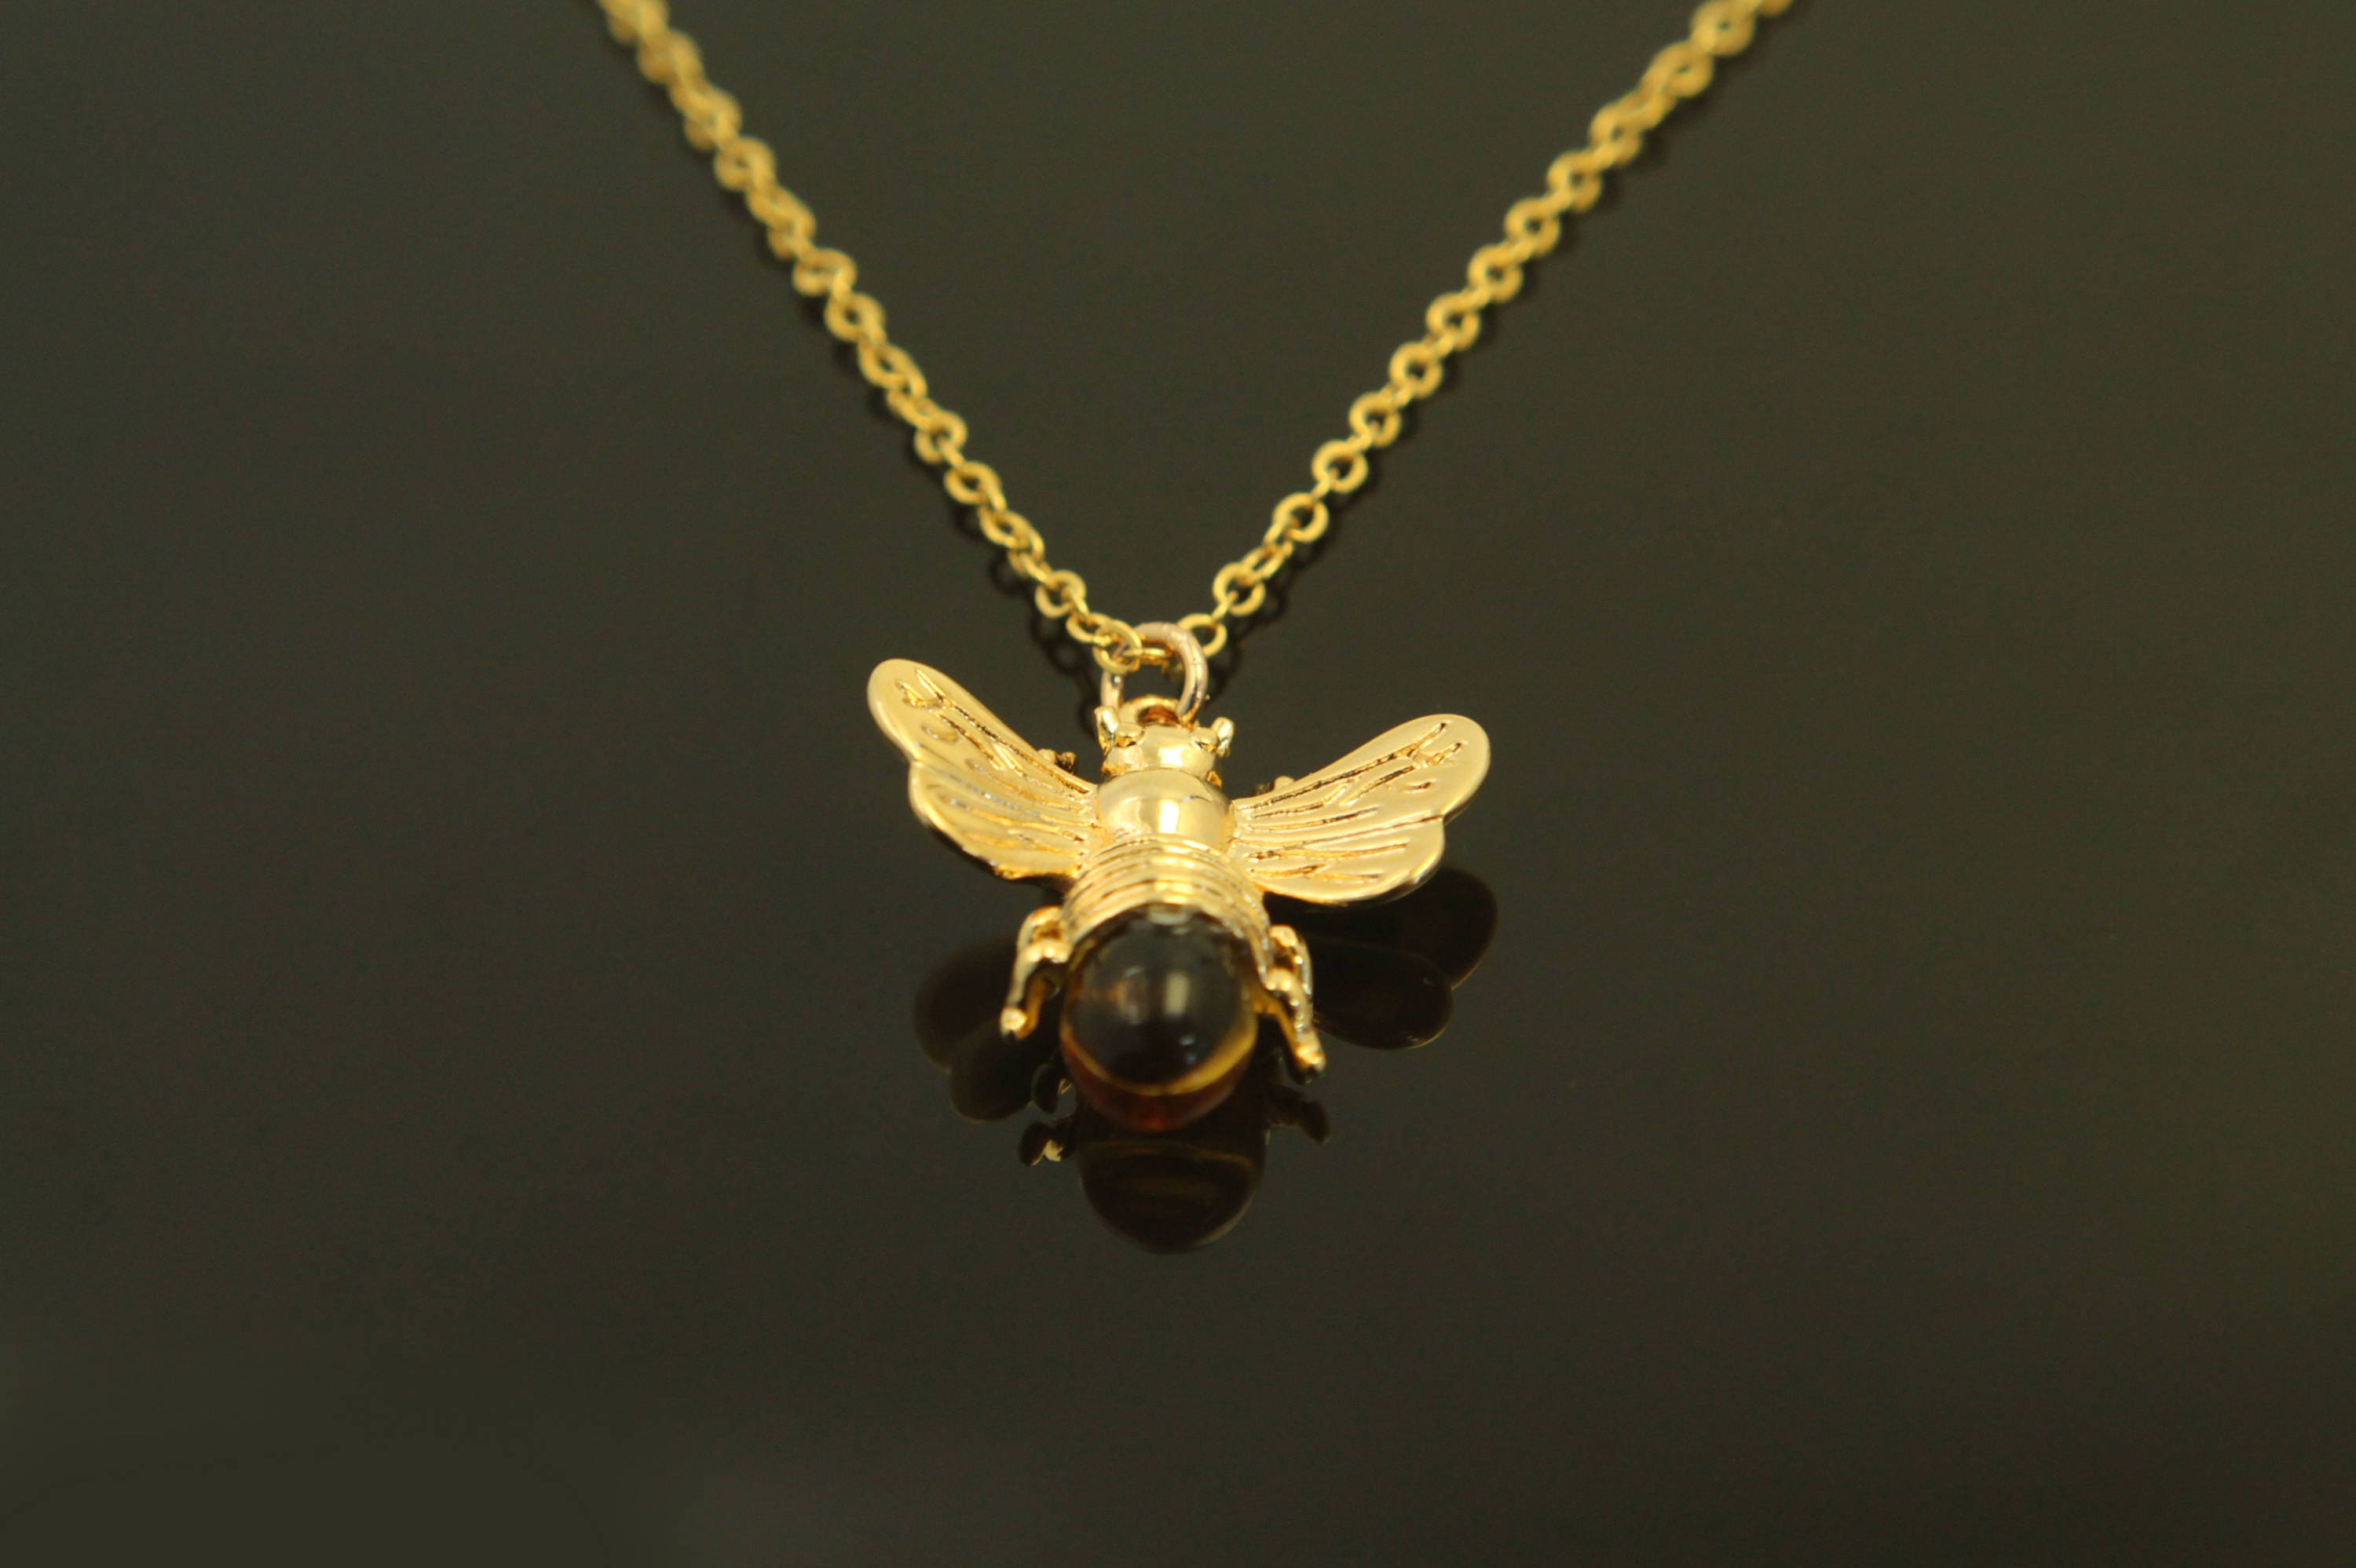 olivia necklace burtonhoneycomb honeycomb cocomi bee gold pendant honey up products close